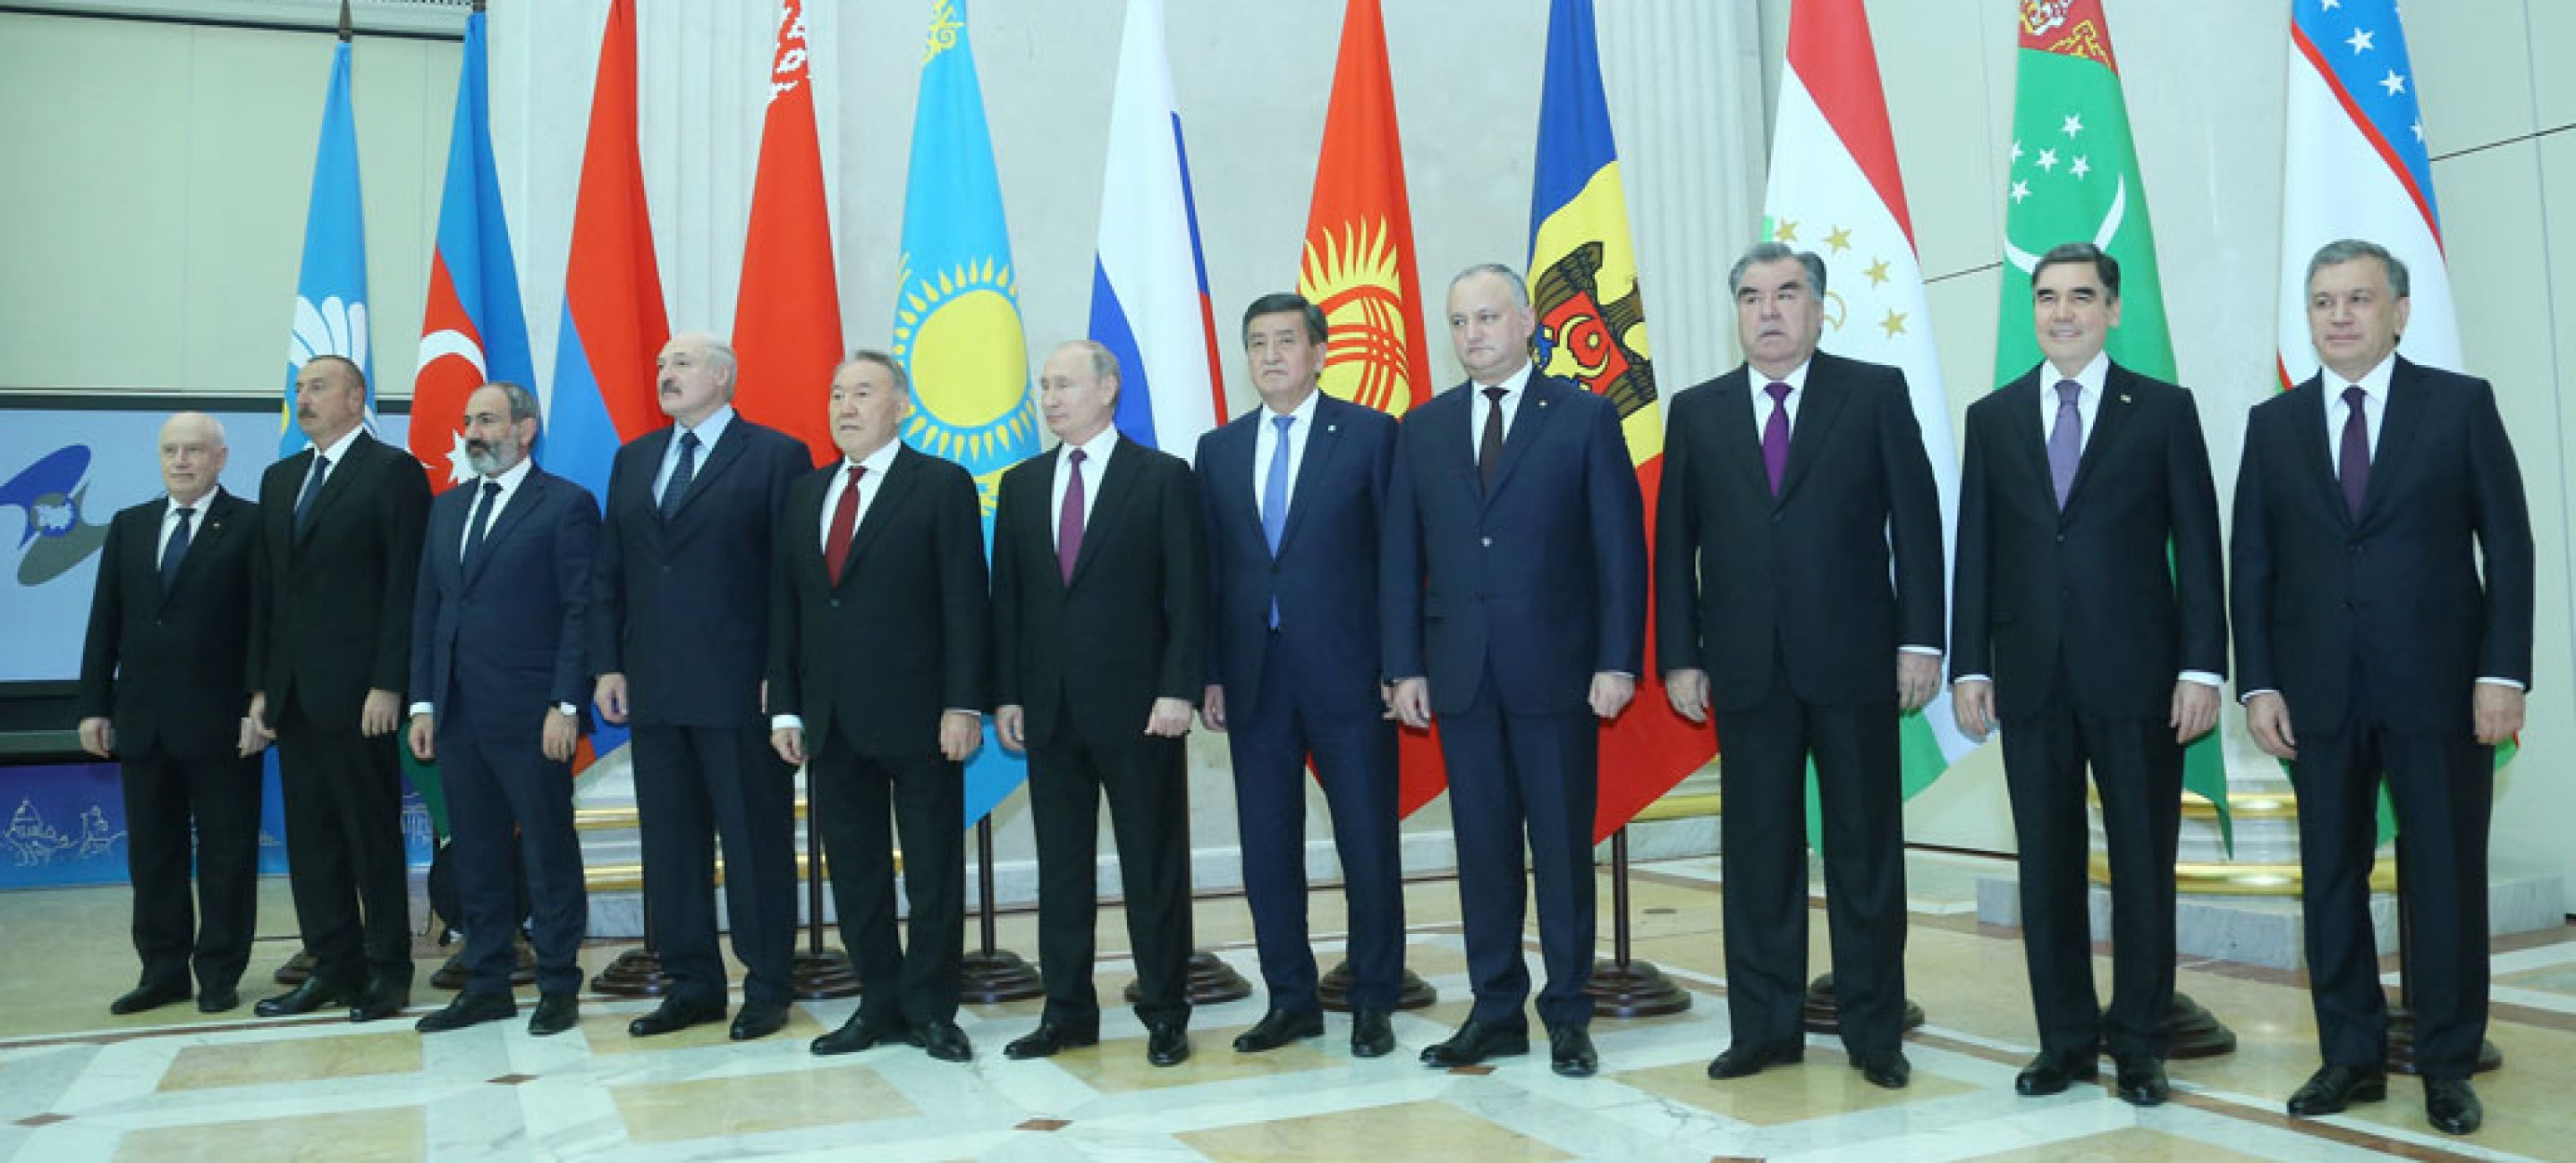 PRESIDENT OF TURKMENISTAN PARTICIPATED IN THE MEETING OF THE HEADS OF CIS MEMBER STATES IN ST. PETERSBURG